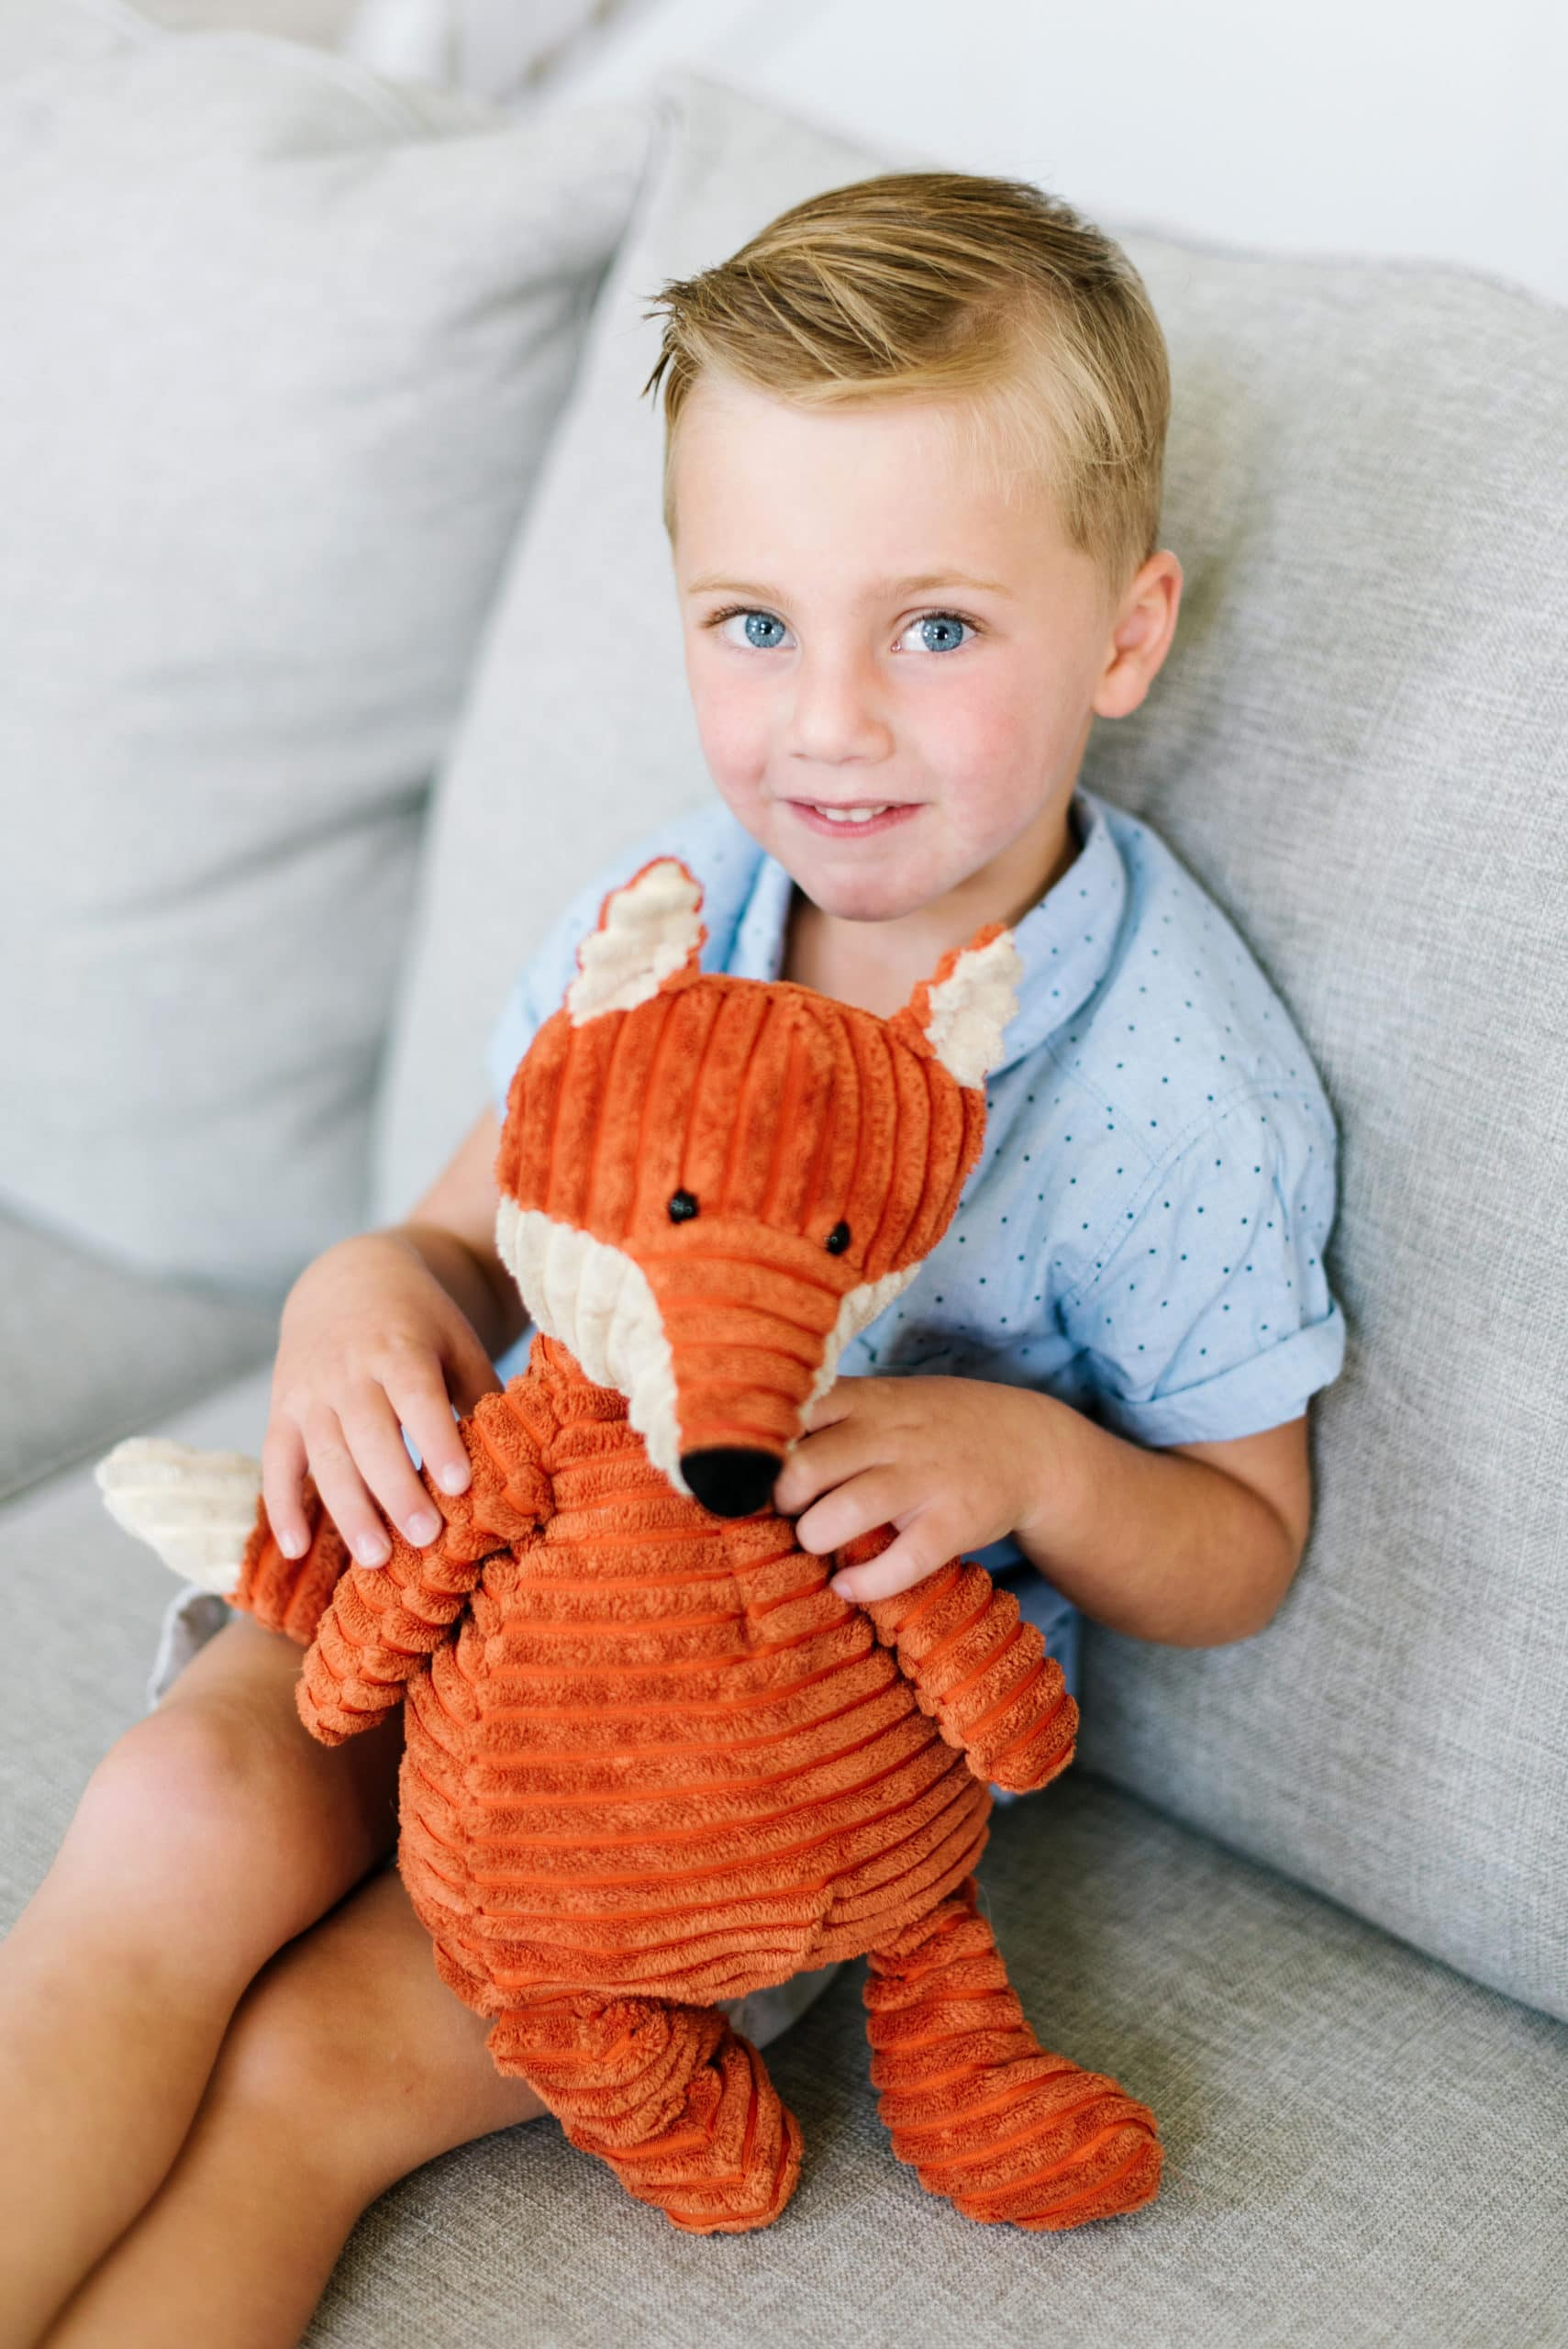 a photo of a young blue eyed boy sitting on a couch with his stuffed toy fox